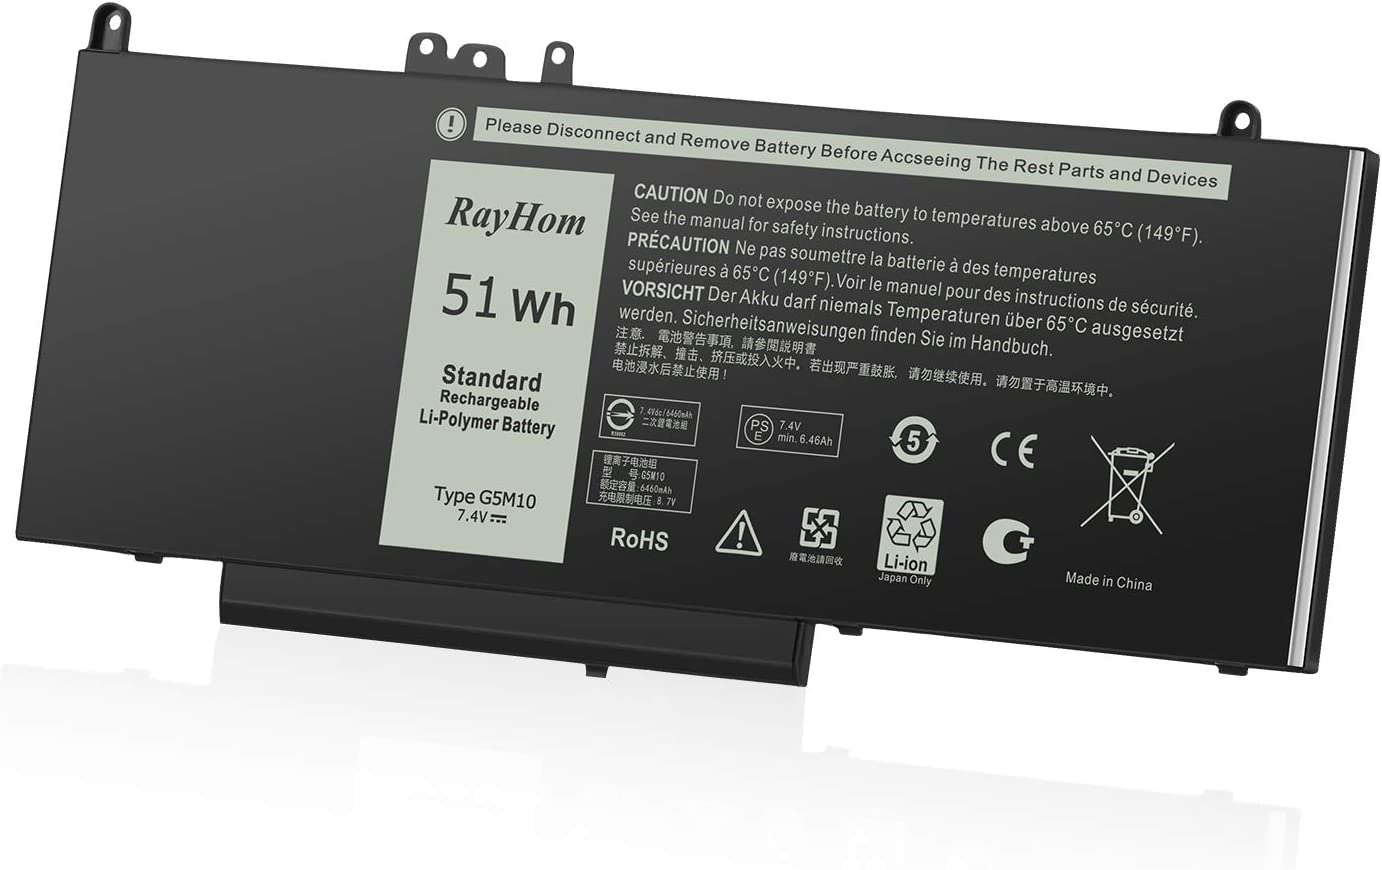 RayHom Replacement G5M10 Laptop Battery - for Dell Latitude 14 E5450 Latitude 15 E5550 Notebook 15.6